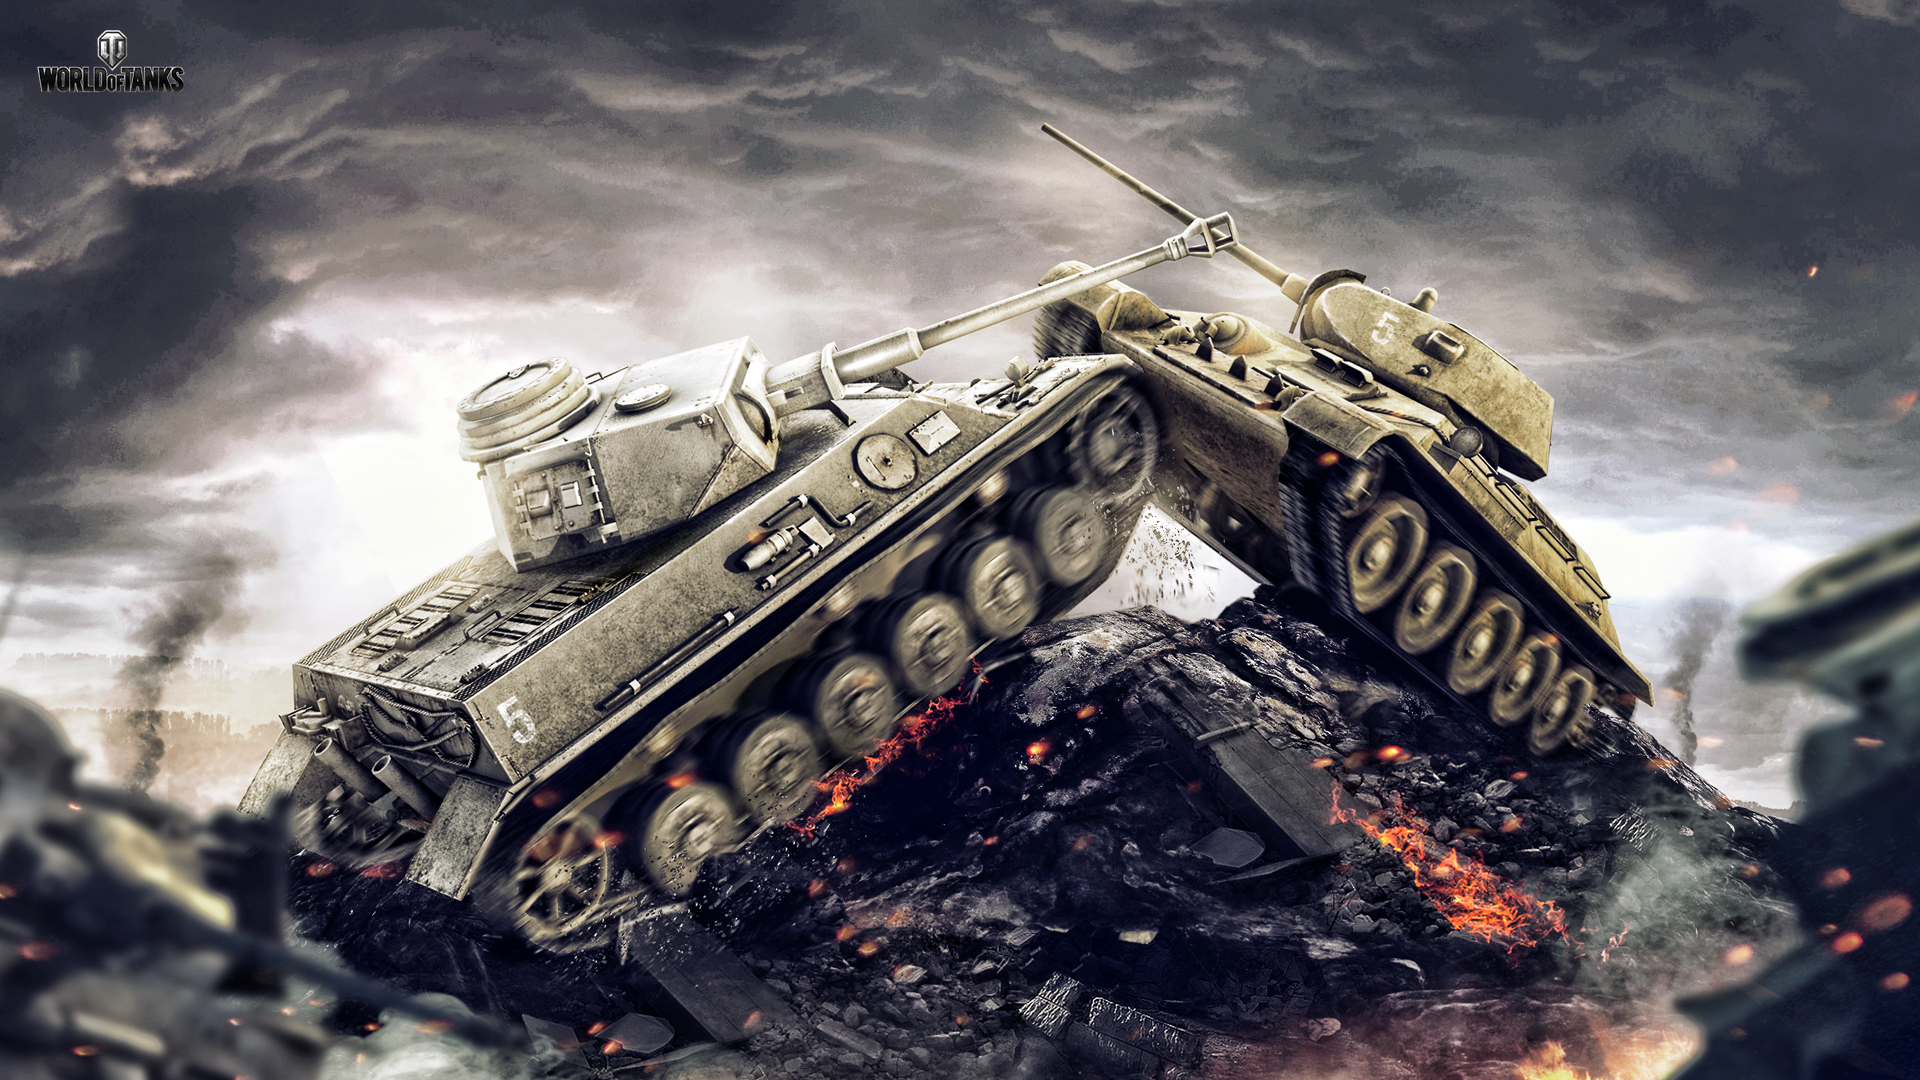 wot_highfive_wp_1920x1080.jpg - World of Tanks